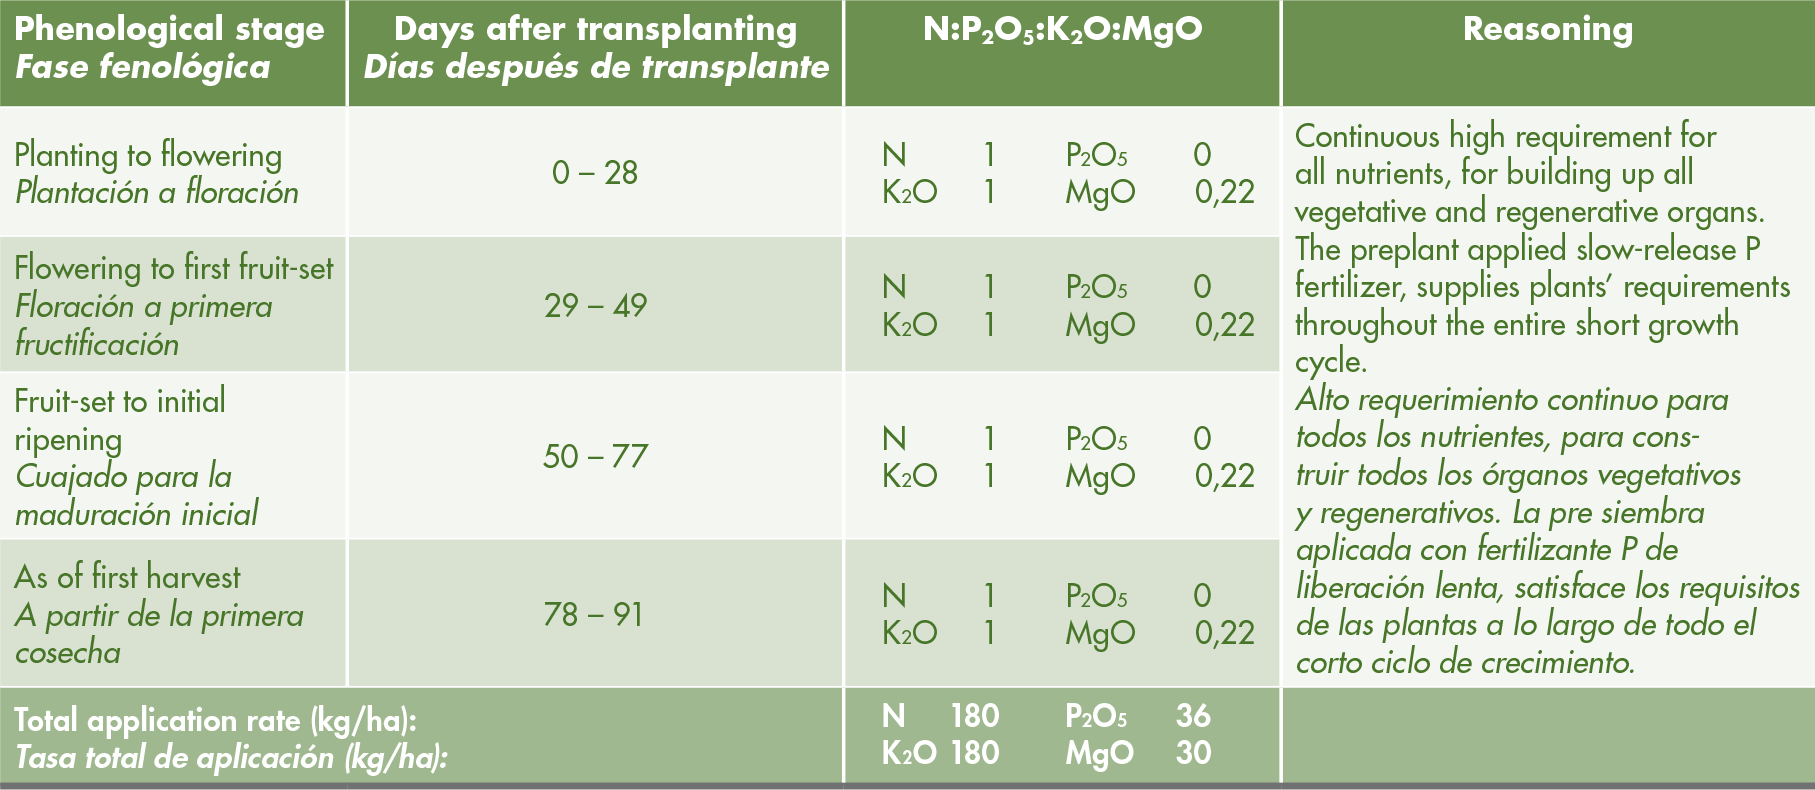 Suggested fertigation schedule of major nutrients for field-grown watermelons at expected yield of 35-45 MT/ha. This fertigation regime leans on a pre-plant base dressing of: N= 40 kg/ha; P<sub>2</sub>O<sub>5</sub>= 36 kg/ha; K<sub>2</sub>O= 40 kg/ha. Ref.: Vegetable Crop Handbook for Southeastern United States, 2011